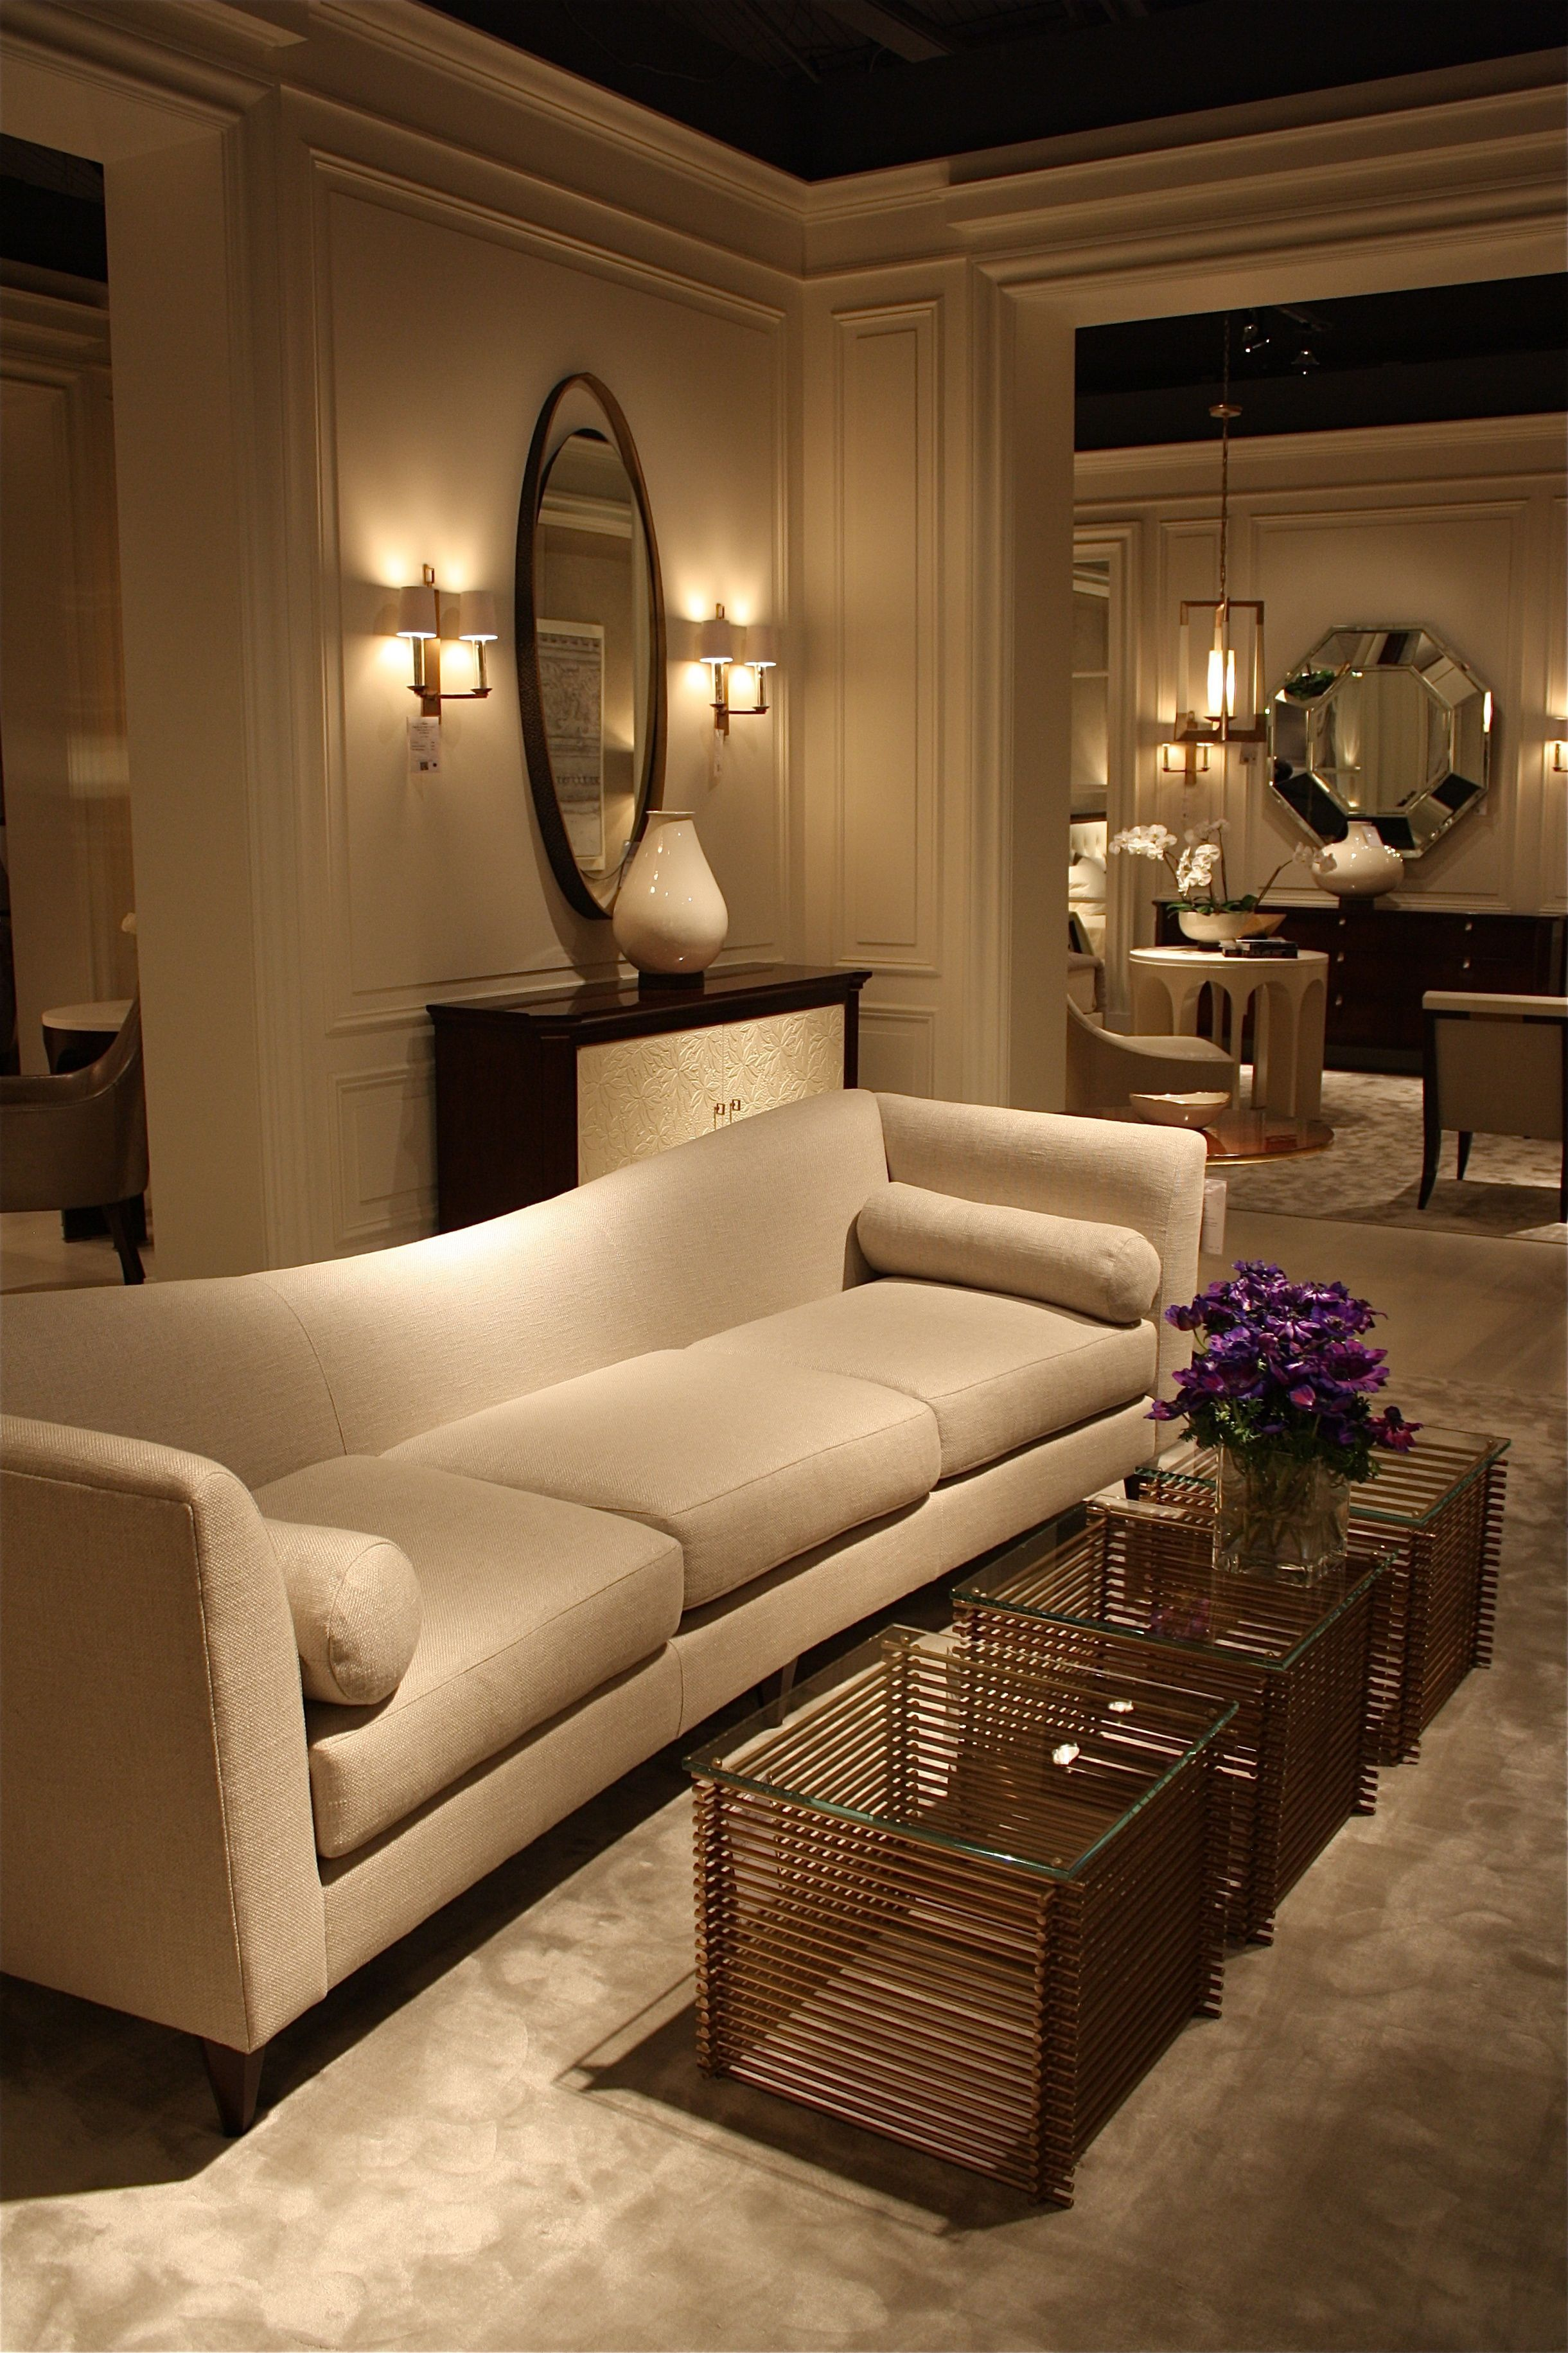 Luxury Living Panel Molding, Crown Molding And Millwork Creates